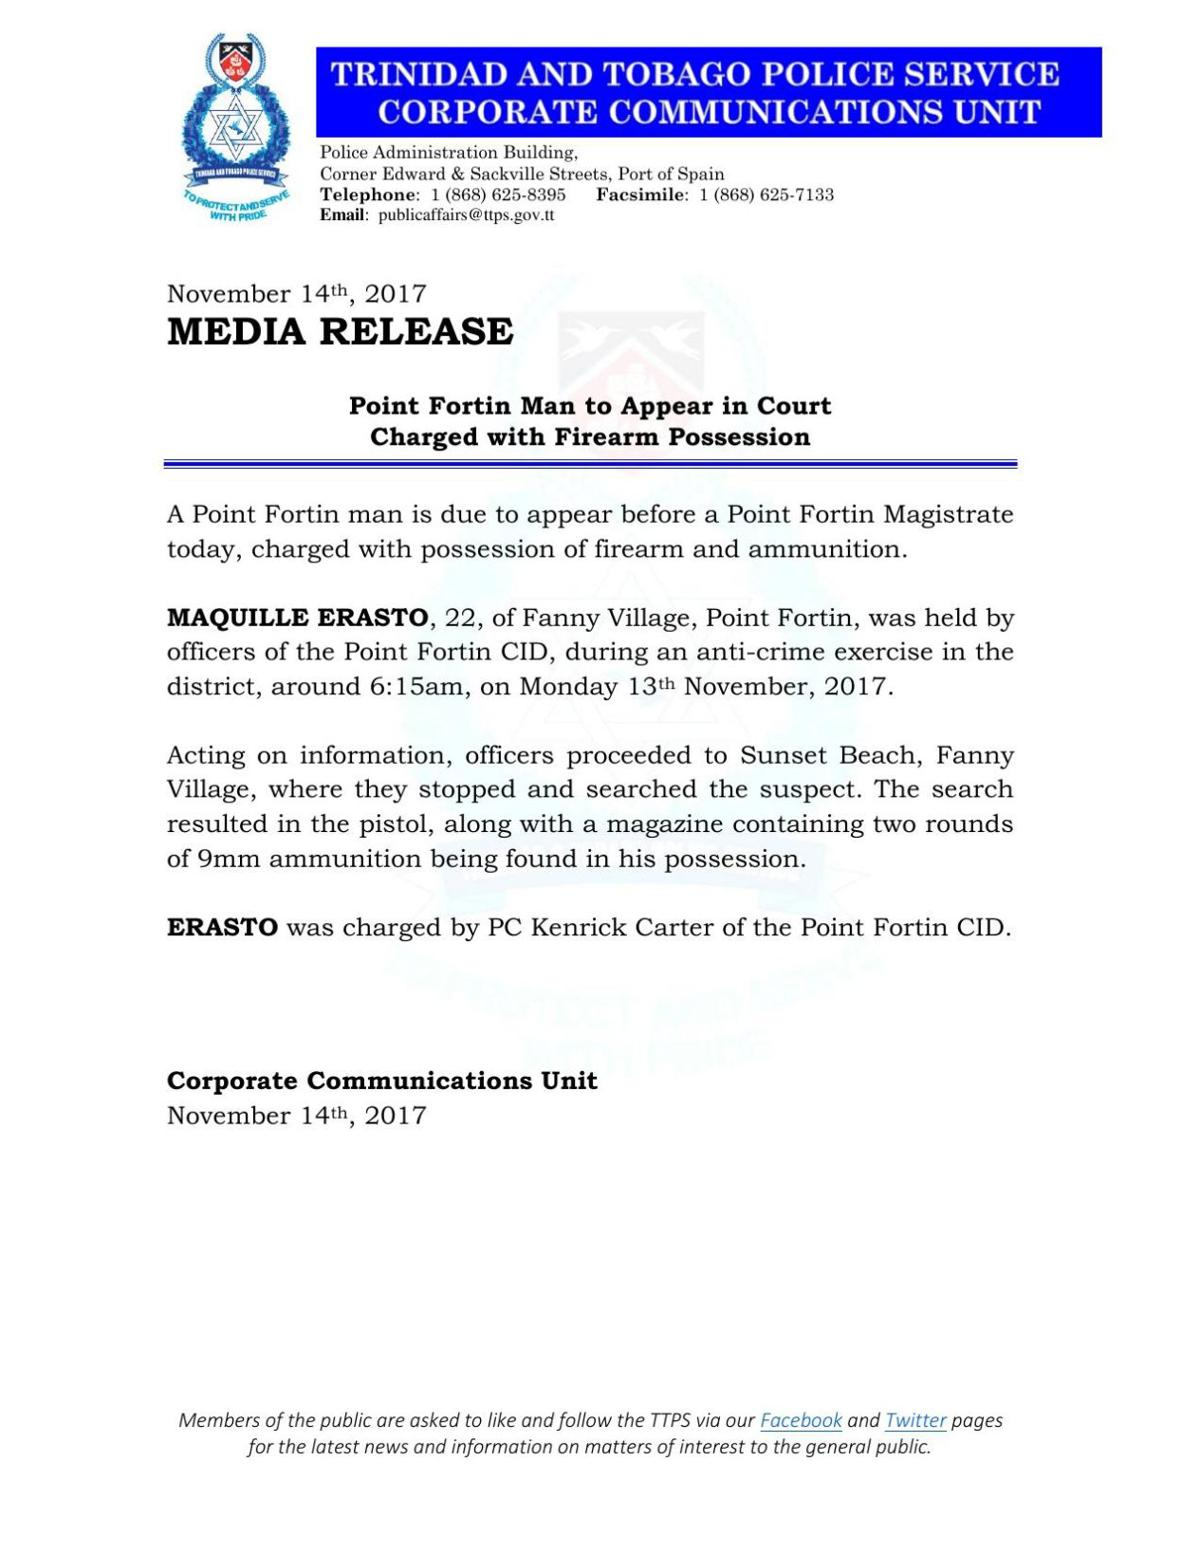 Media Release- Point Fortin Man to Appear in Court Charged with